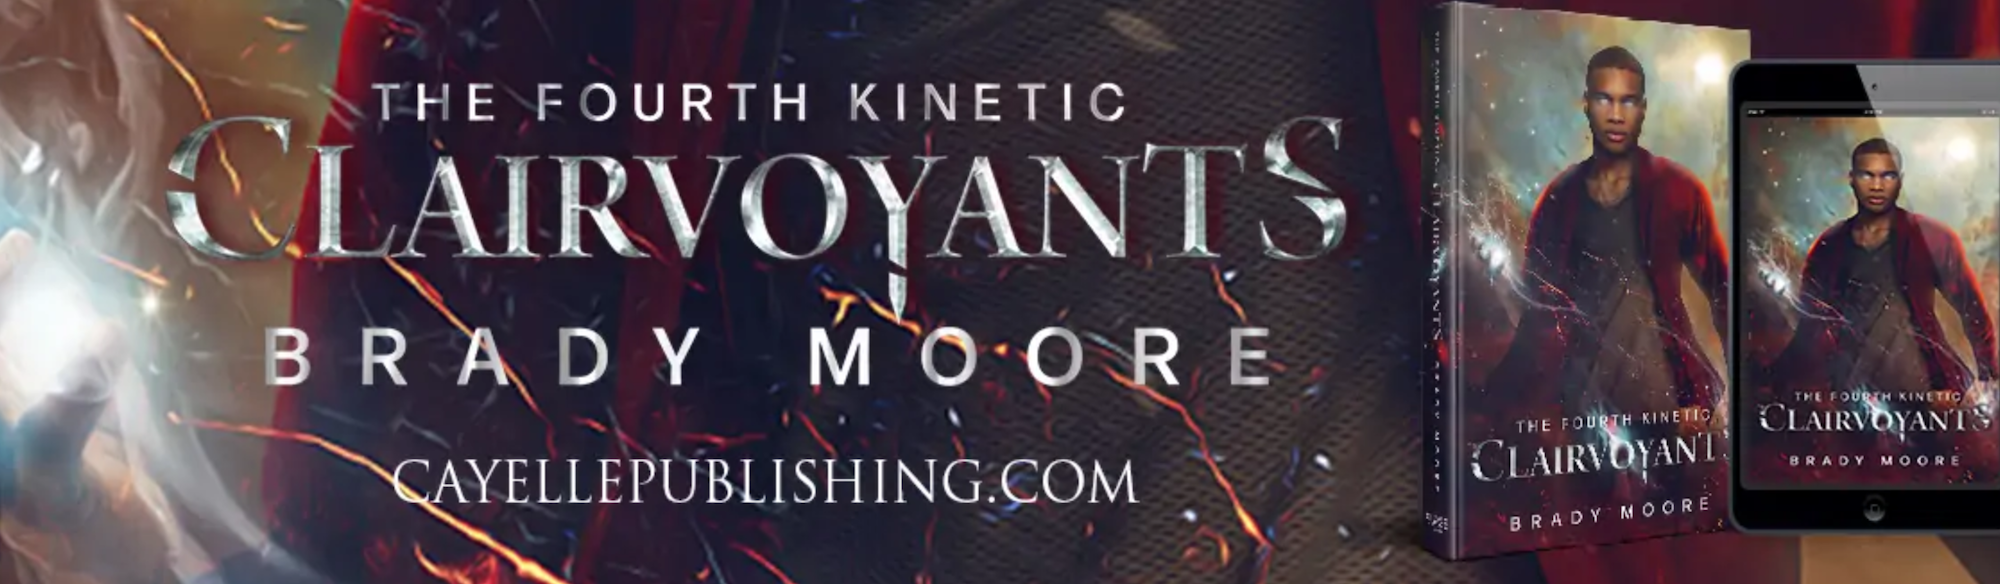 The Fourth Kinetic, by Brady Moore